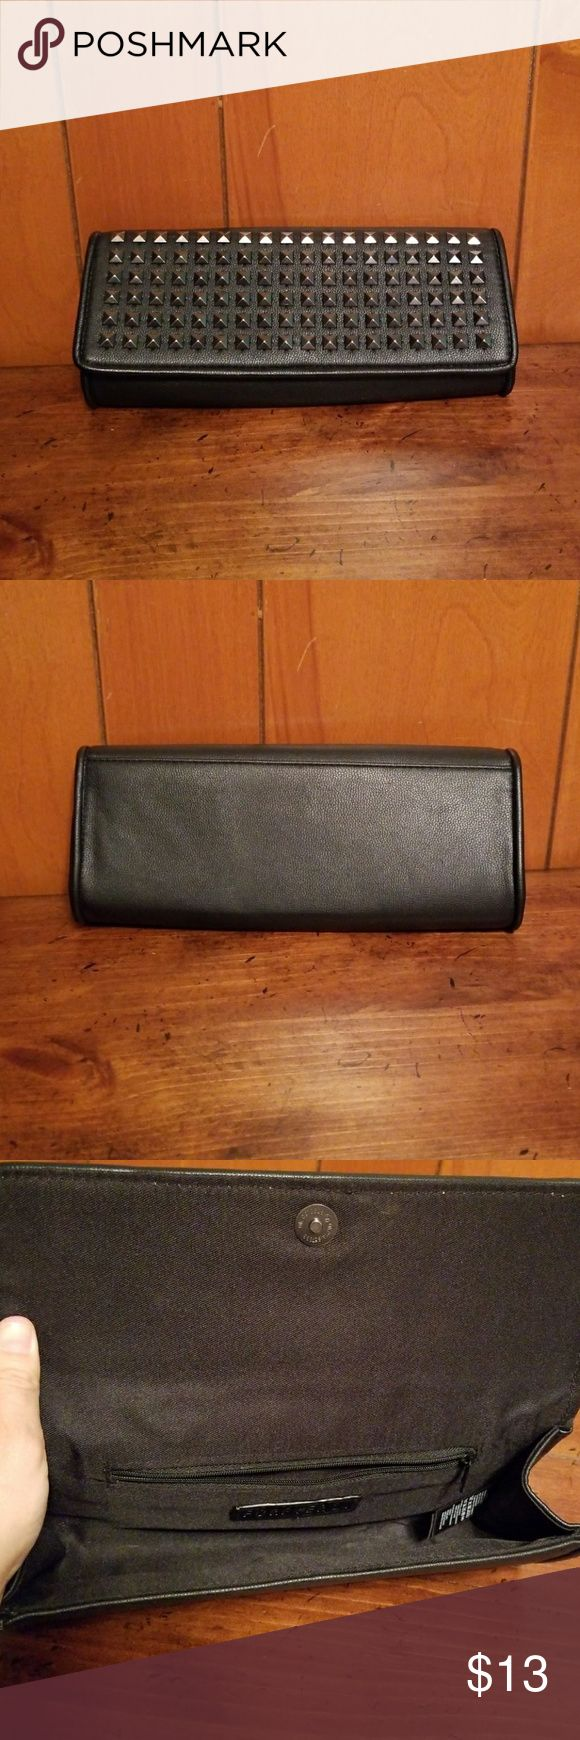 Forever21 studded clutch Ladies forever21 black leather studded clutch. Excellent condition no rips stains or tears. Measurements are 11in long 4.5 tall. All reasonable offers will be considered. Forever 21 Bags Clutches & Wristlets